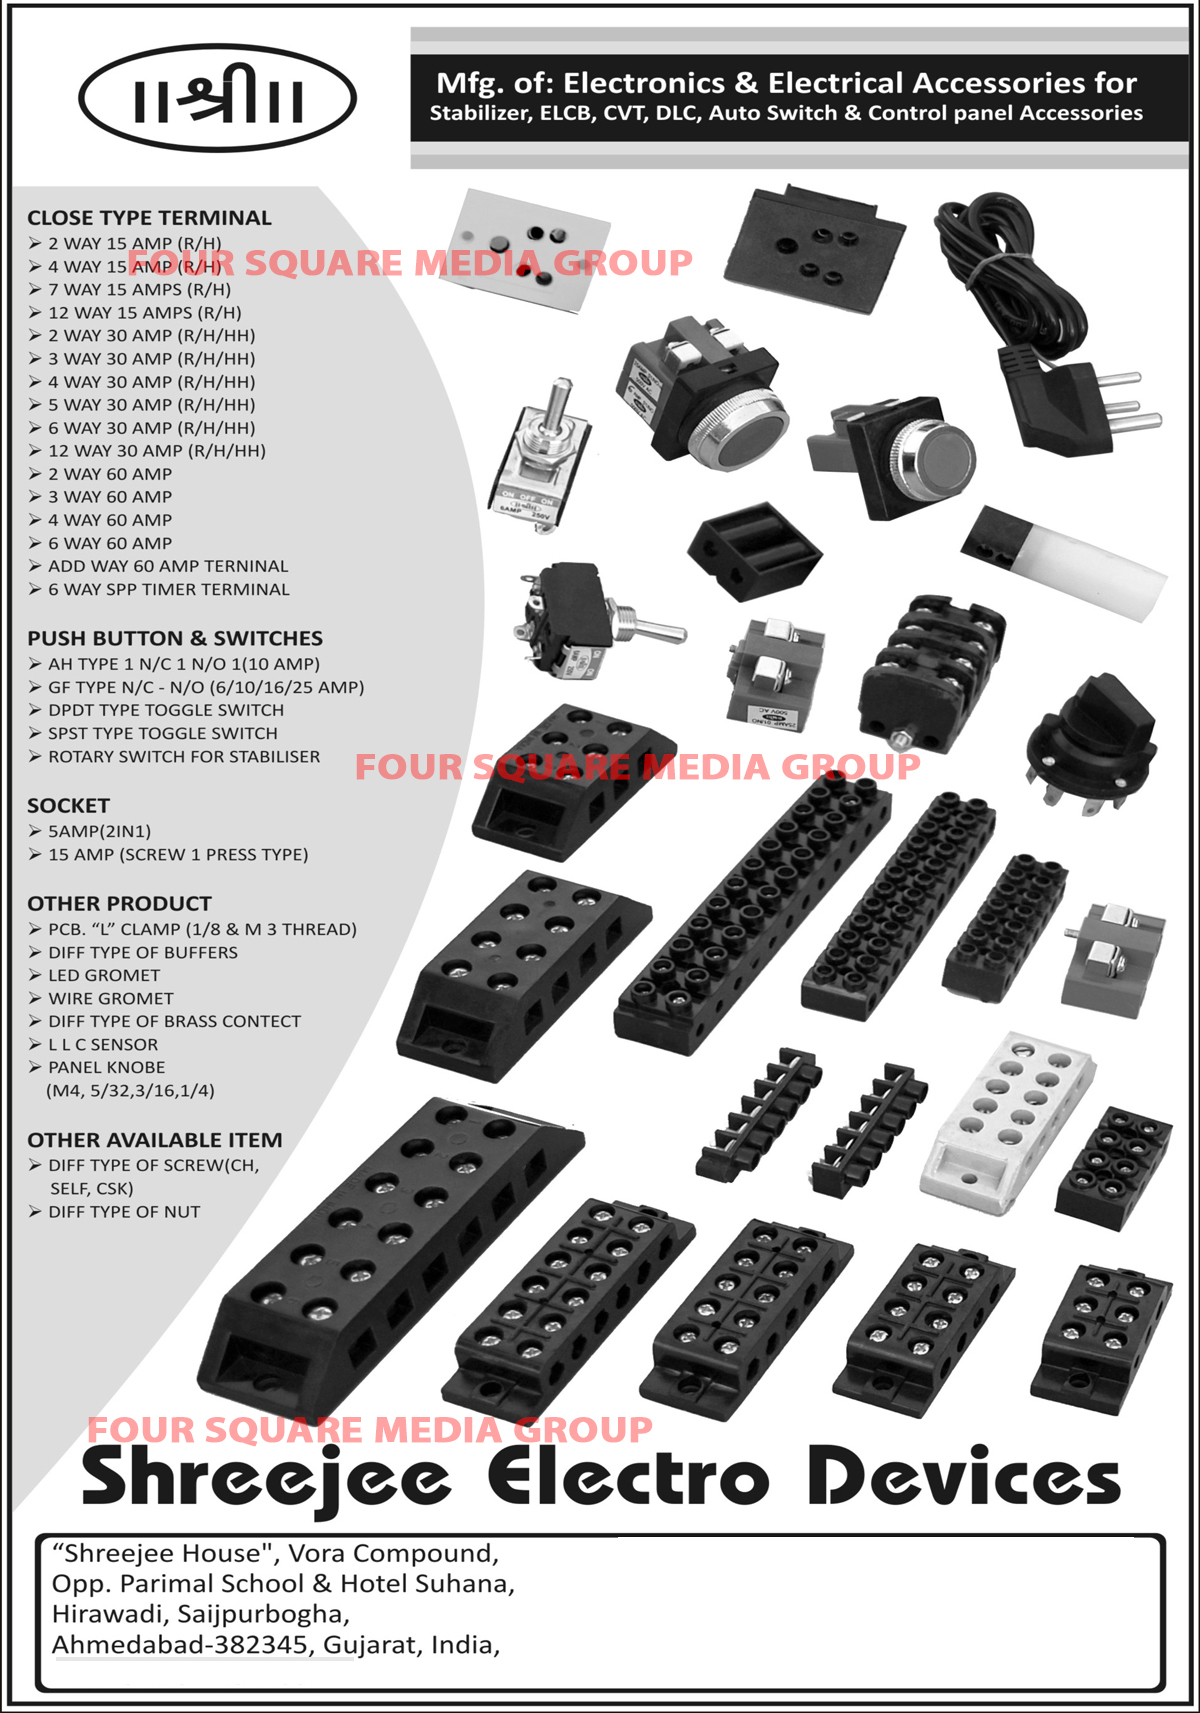 Electronic Accessories For Stabilzers, Electrical Accessories For Stabilizers, Electronic Accessories For ELCB, Electrical Accessories For ELCB, Electronic Accessories For CVT, Electrical Accessories For CVT, Electronic Accessories For DLC, Electrical Accessories For DLC, Electronic Accessories For Auto Switch, Electrical Accessories For Auto Switch, Control Panel Accessories, Close Type Terminals, Push Buttons, DPDT Type Toggle Switches, SPST Type Toggle Switches, Rotary Switch For Stabilizers, Stabilizer Rotary Switches, Sockets, Screw 1 Press Type Sockets, PCB L Clamps, Printed Circuit Board L Clamps, Buffers, Led Gromets, Wire Gromets, Brass Contects, LLC Sensors, Panel Knobes, CH Screws, Self Screws, CSK Screws, Nuts, Push Switches